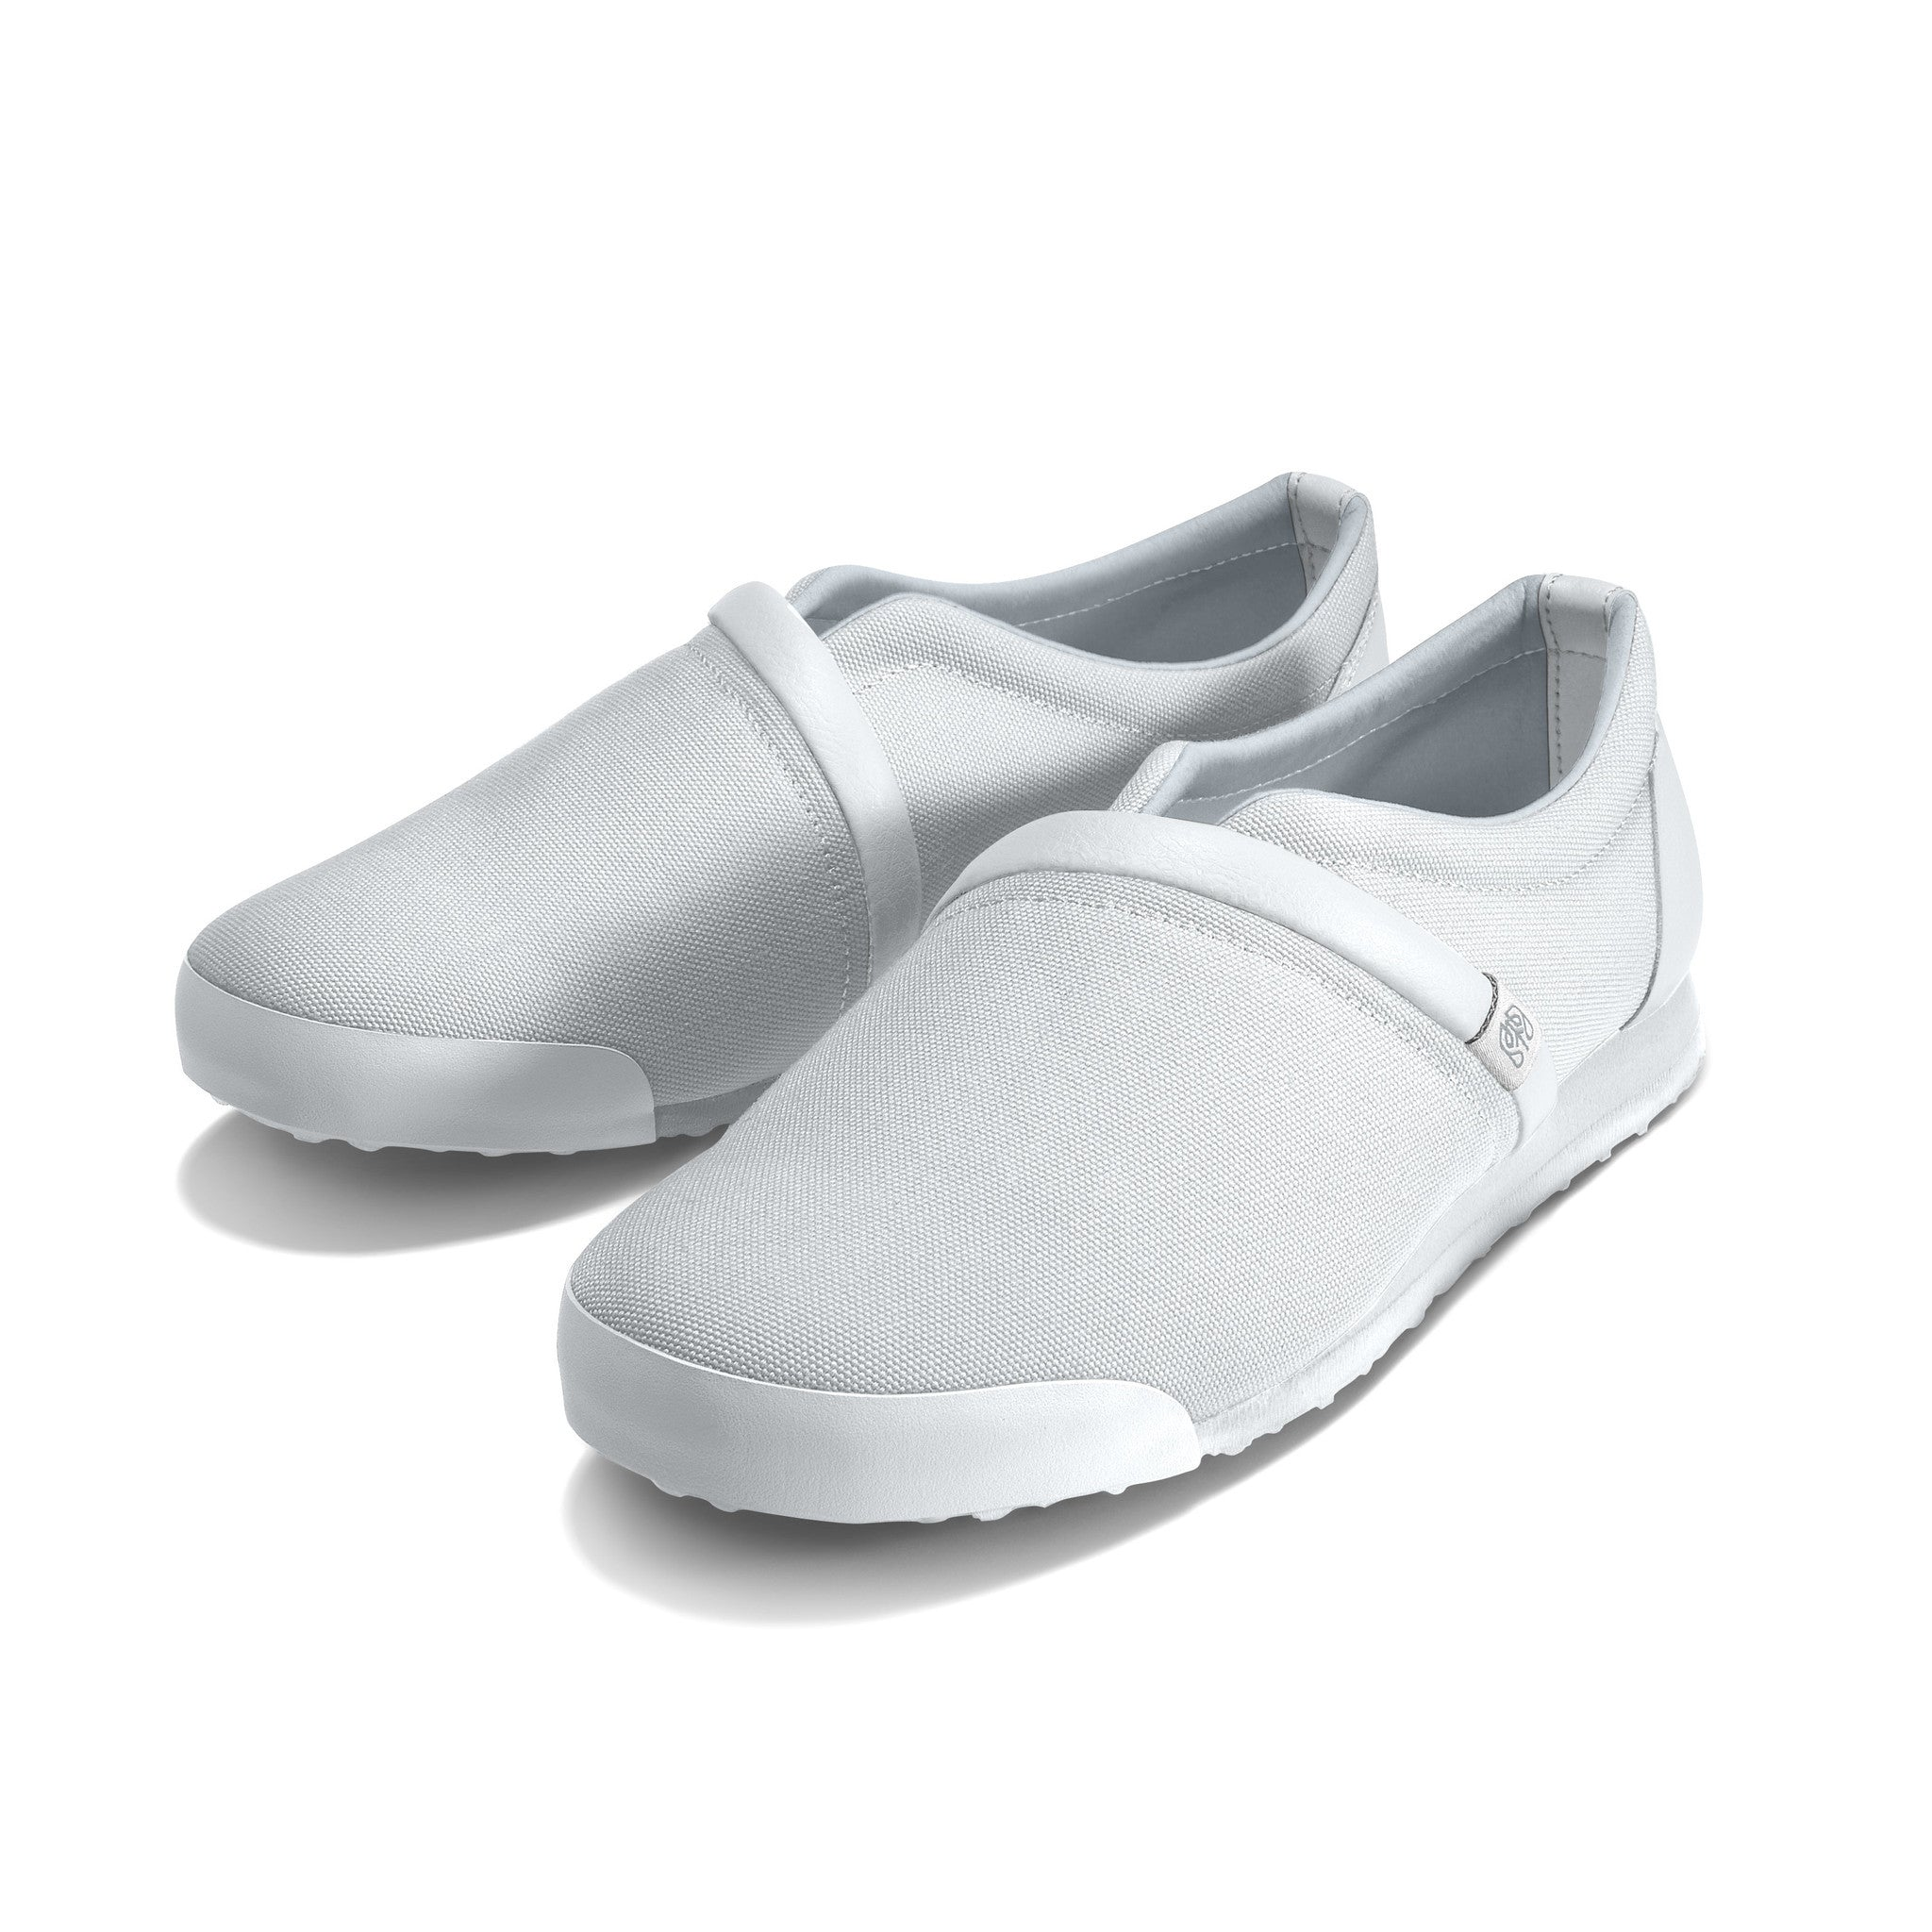 Bright_White - Common Ground Footwear Shoes Left Perspective View